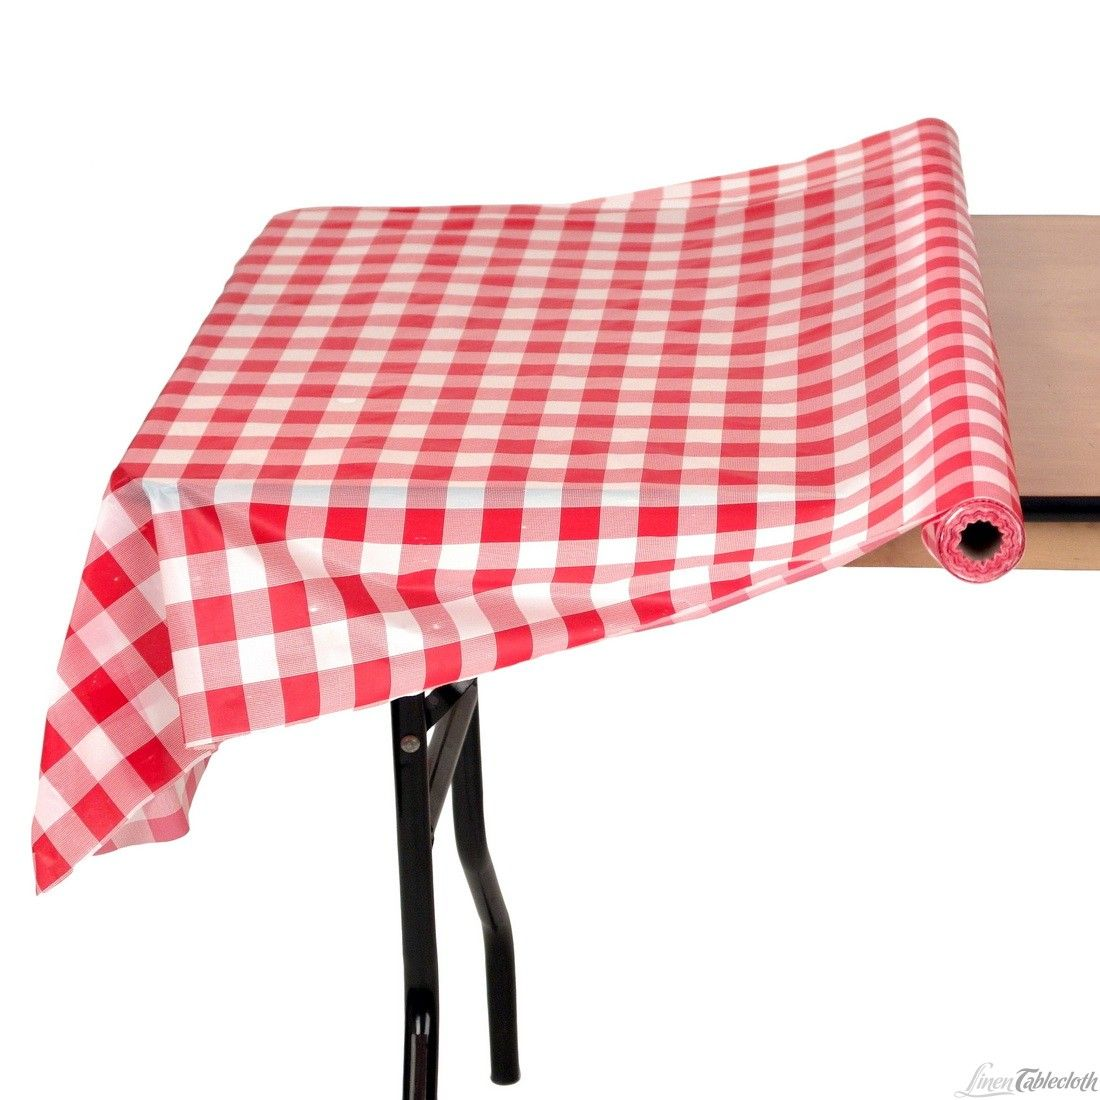 4 X 100 Ft Roll Disposable Plastic Table Cover Red White Checker